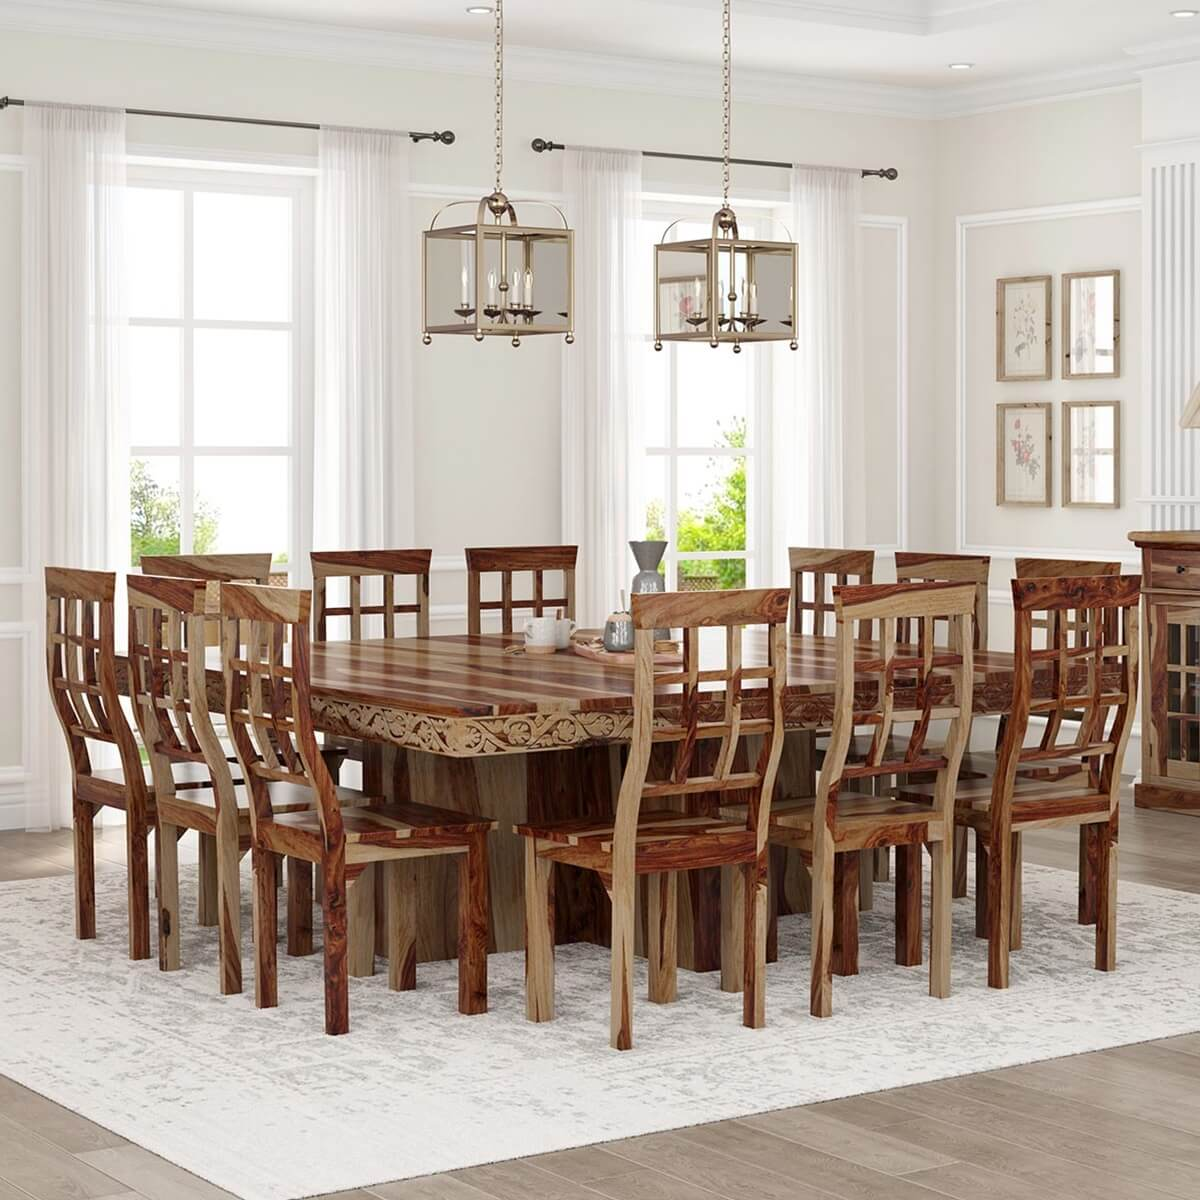 Ranch Large Square Dining Room Table and Chair Set For 12